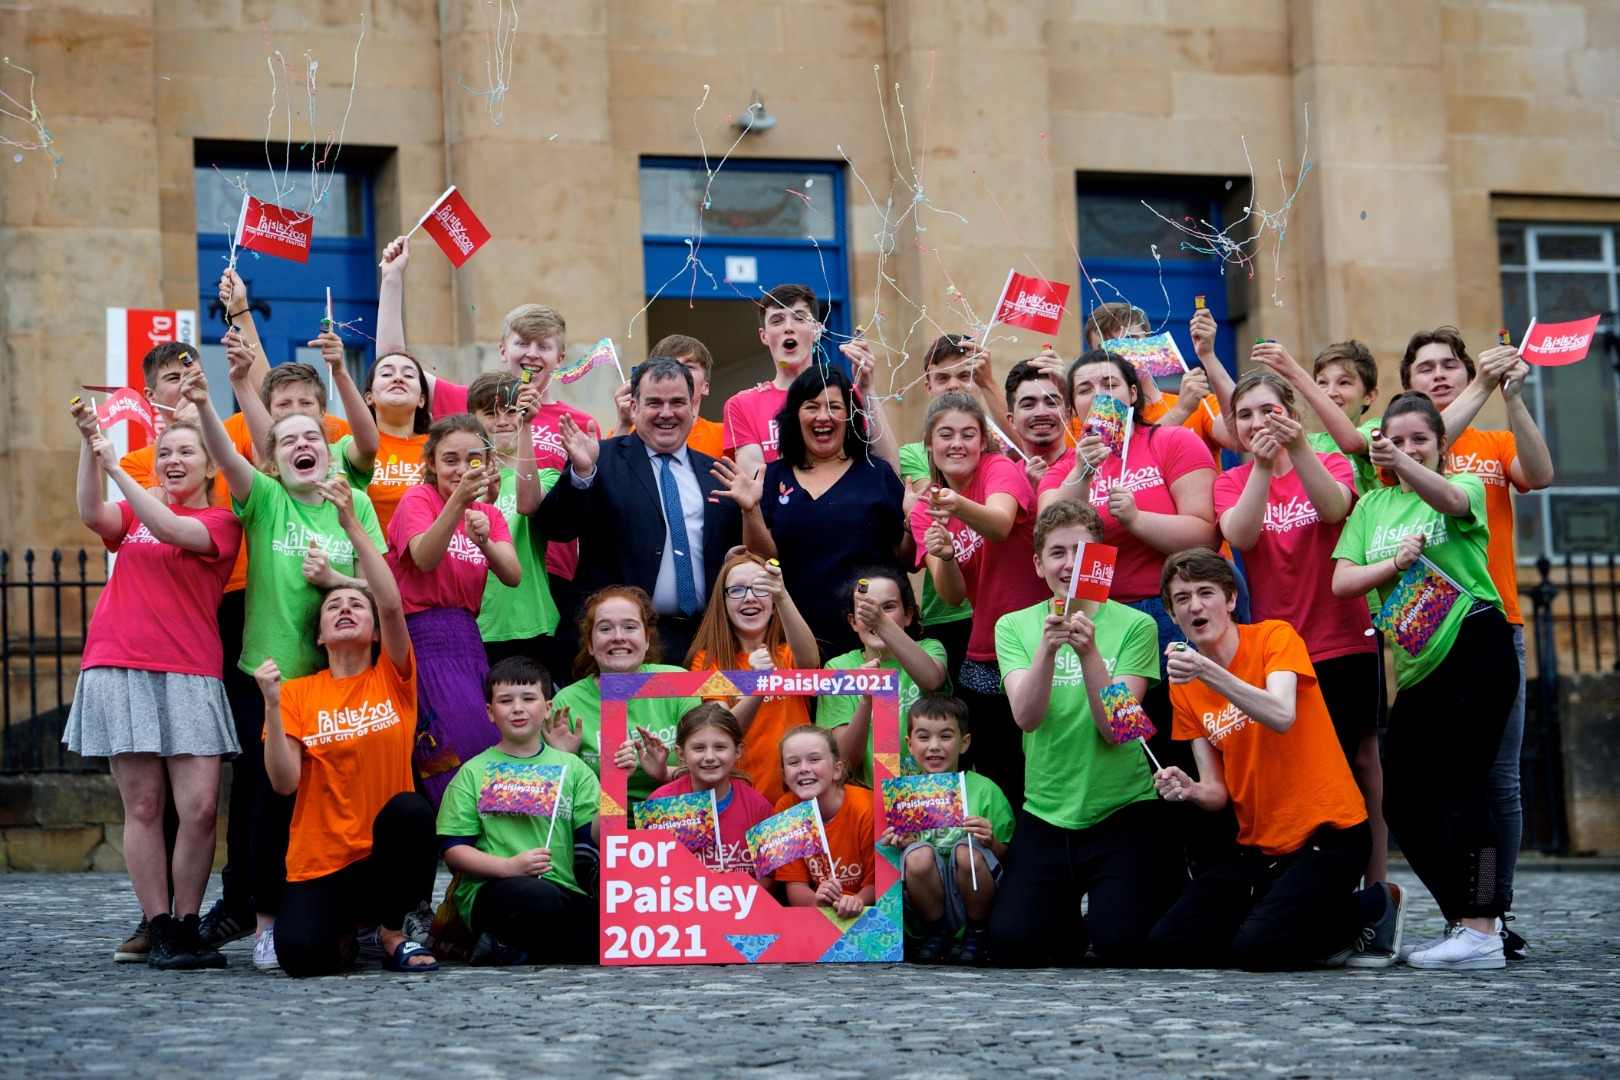 Paisley named sole Scottish bidder on UK City of Culture 2021 shortlist